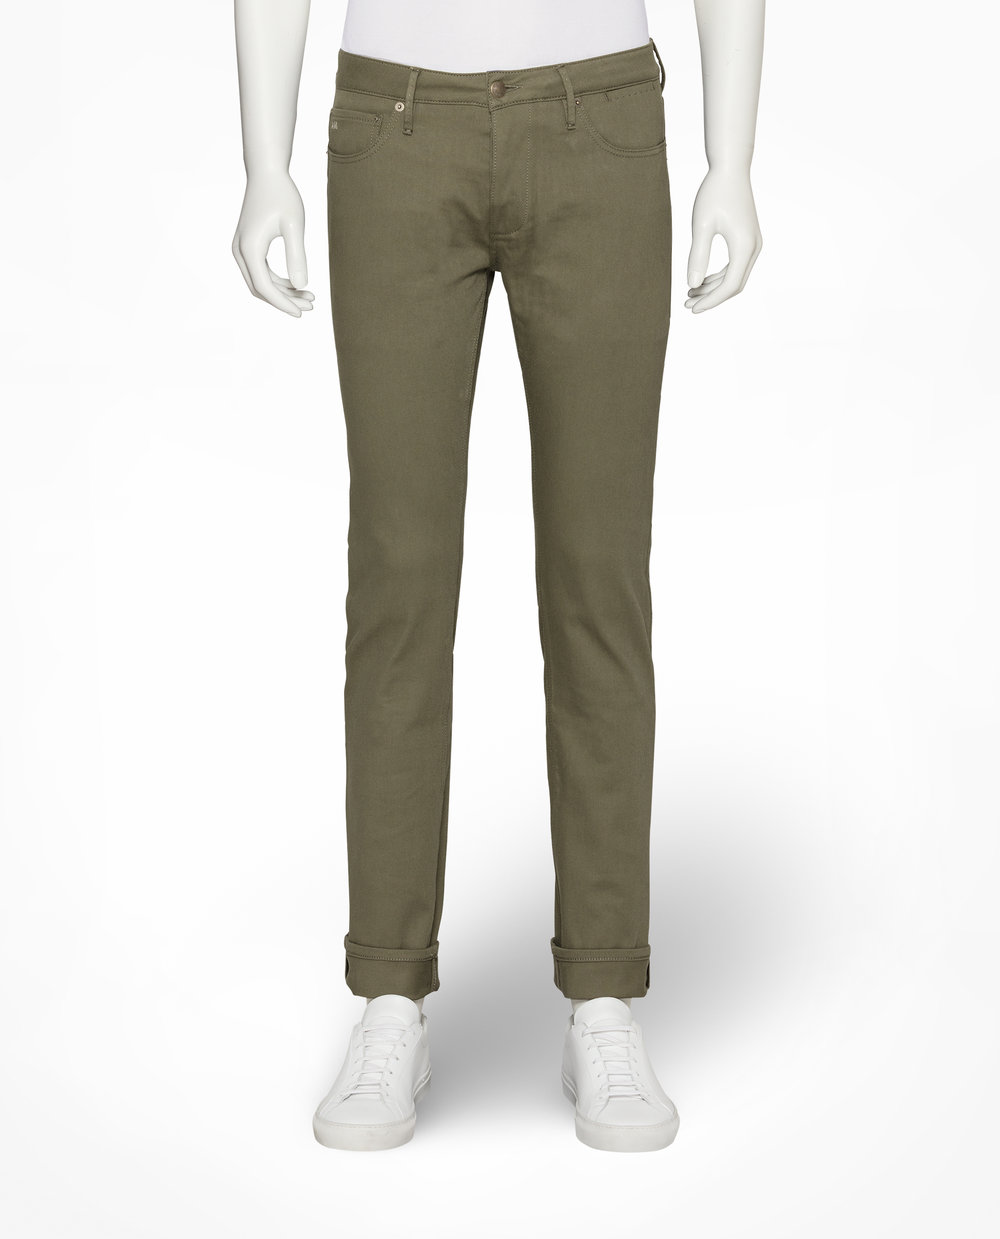 OLIVE STRETCH TWILL COTTON